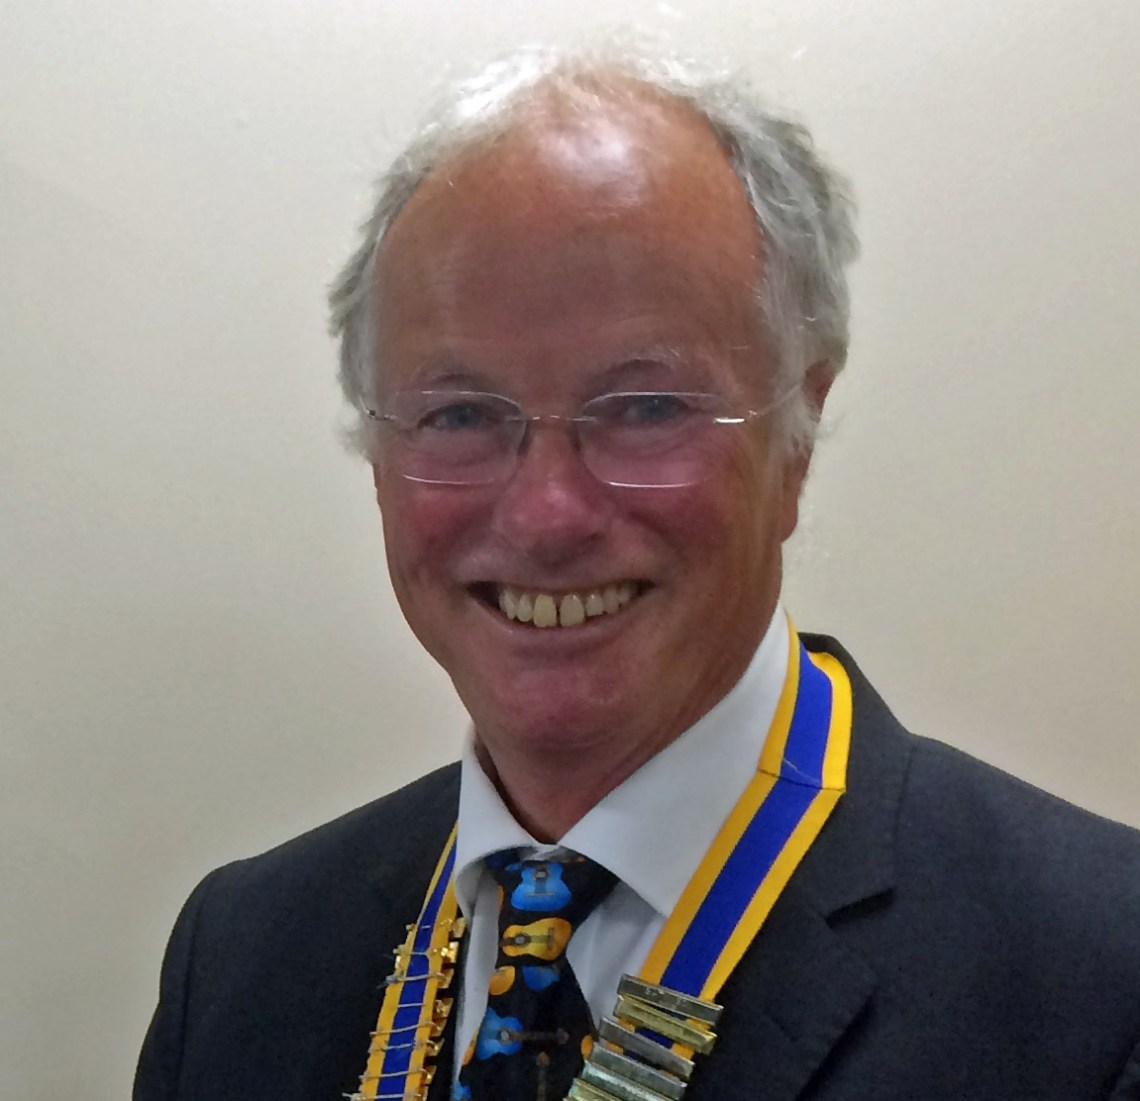 Message from Scott Wolstenholme, President 2016/17 of the Rotary Club of Roundhay